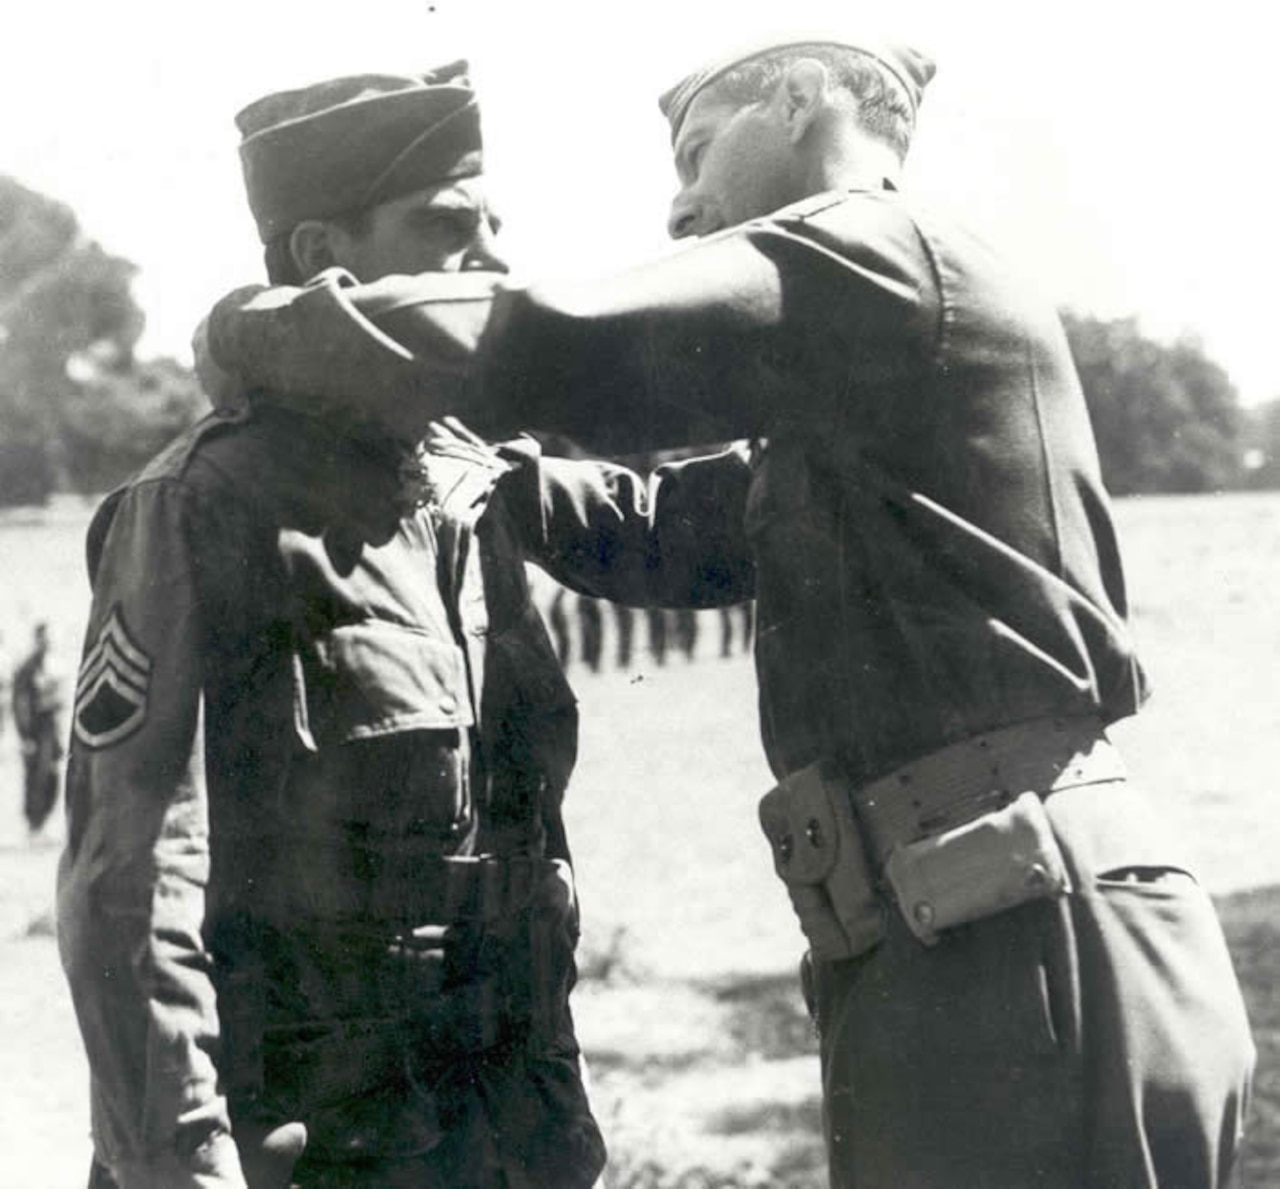 A uniformed man places a medal on a ribbon around the neck of another uniformed man.